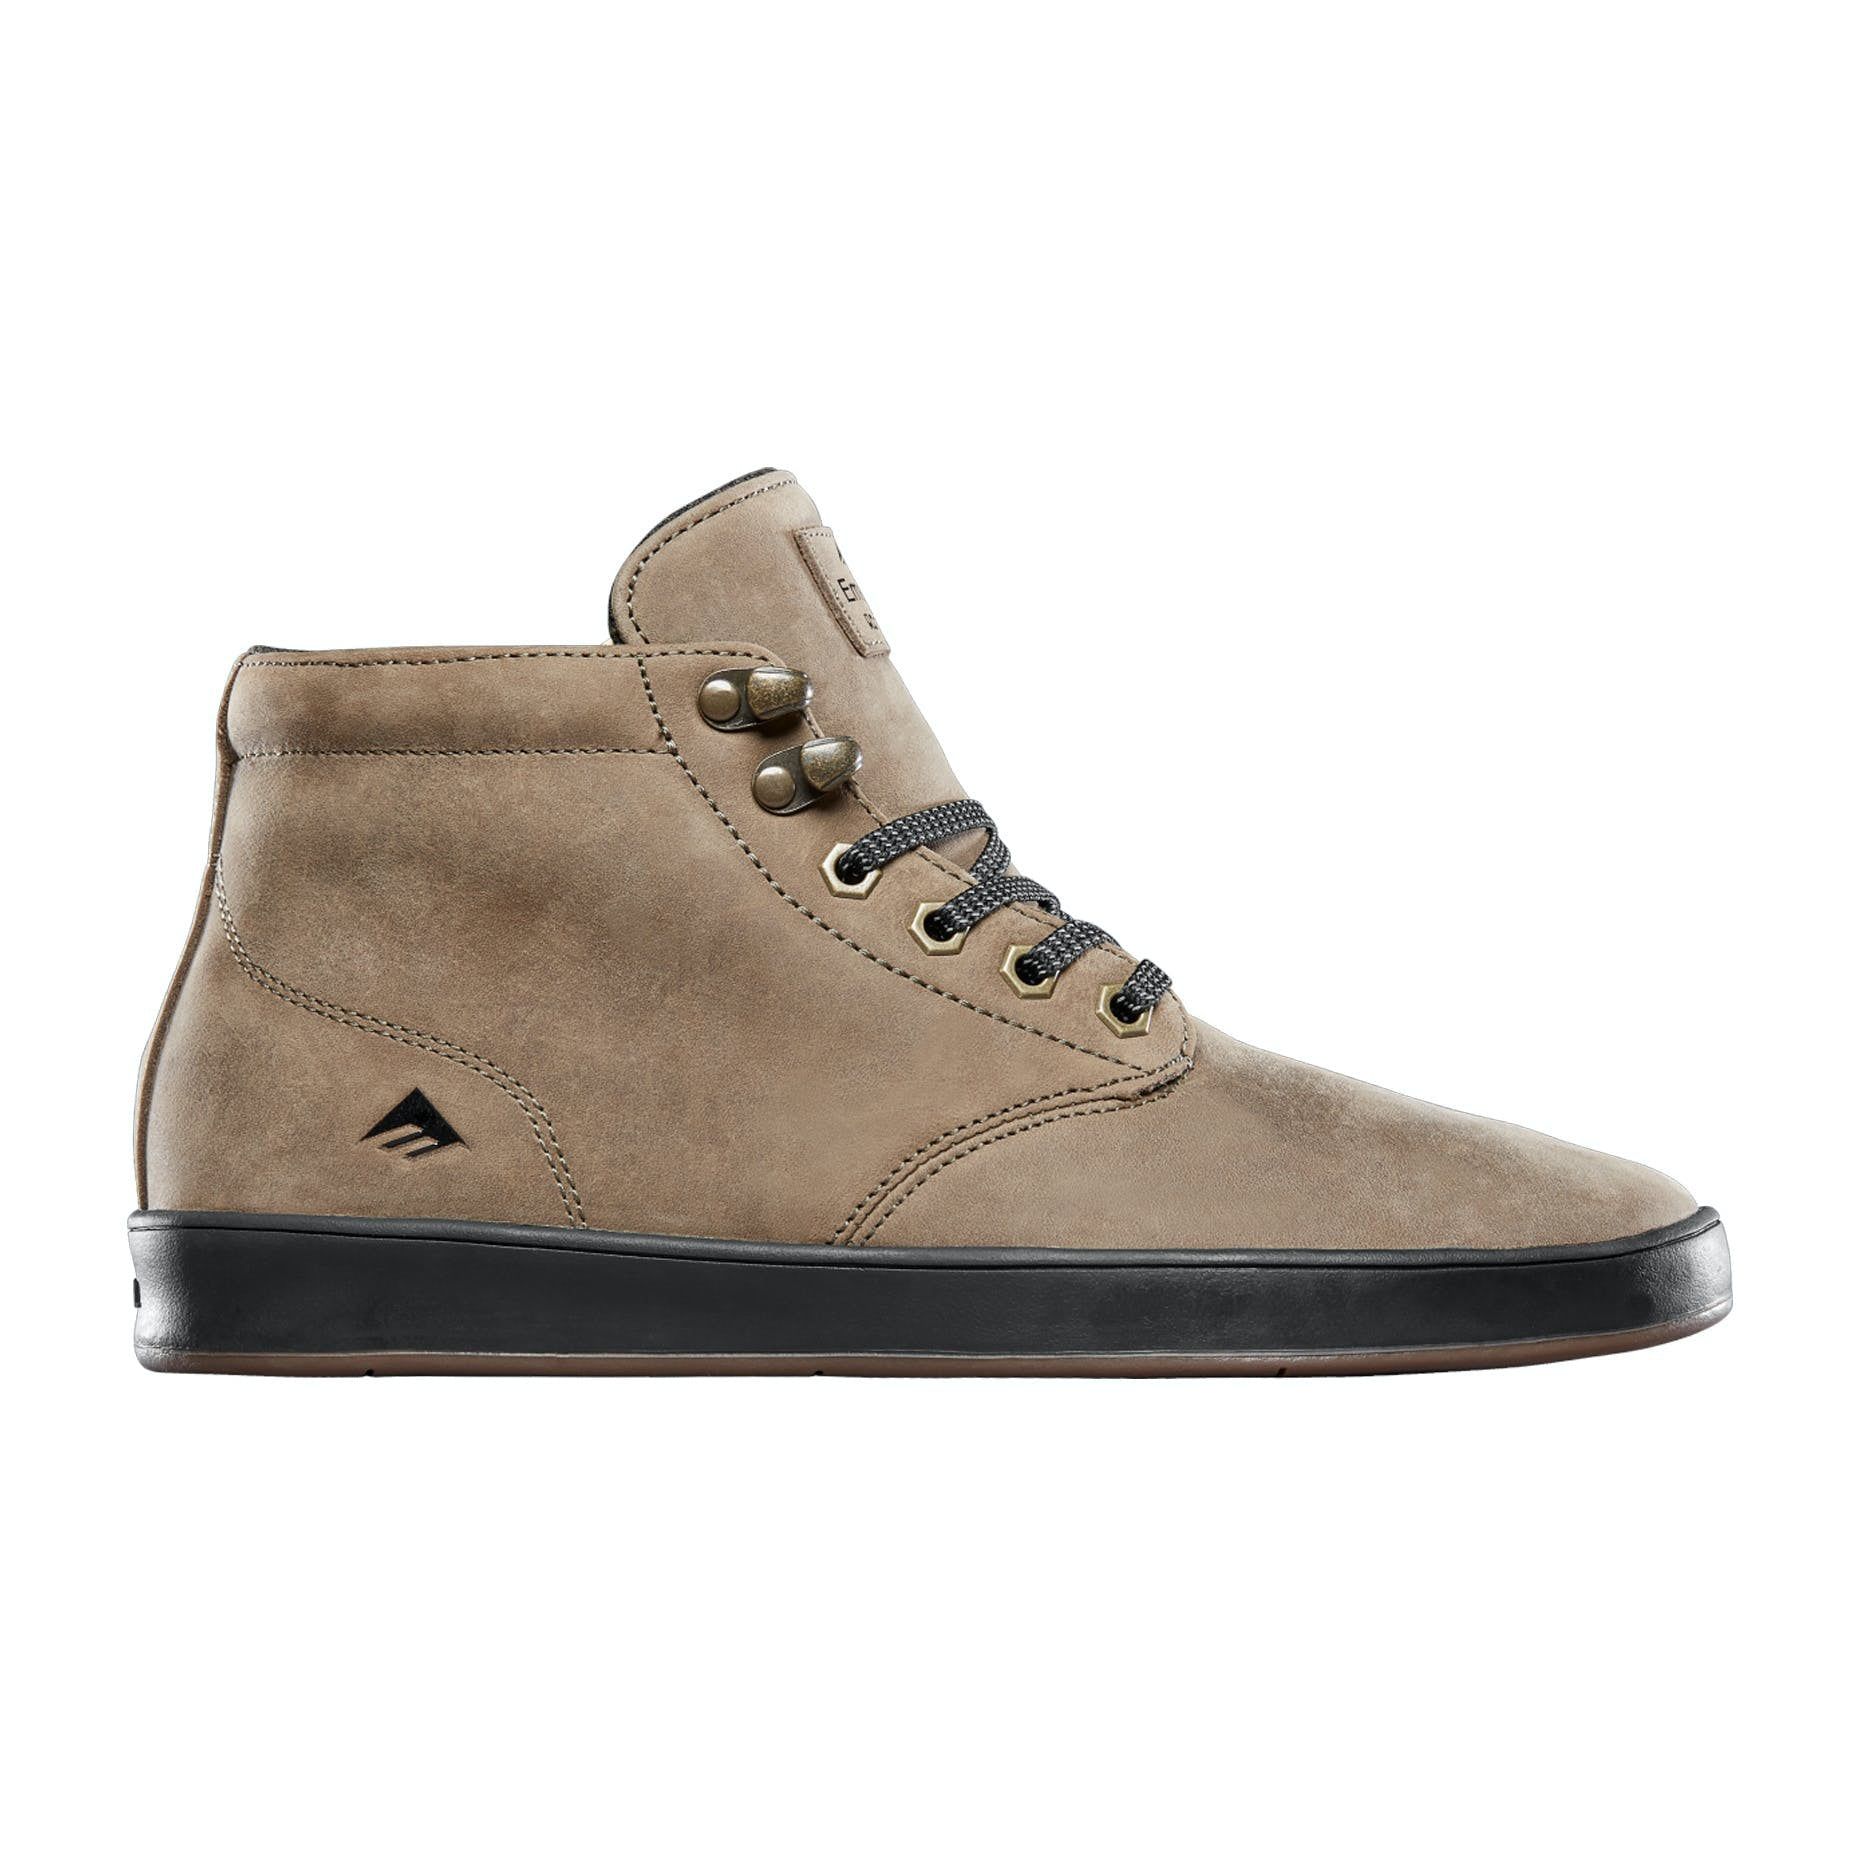 Emerica The Romero Laced High Shoes Mens - Brown/Gold/Black